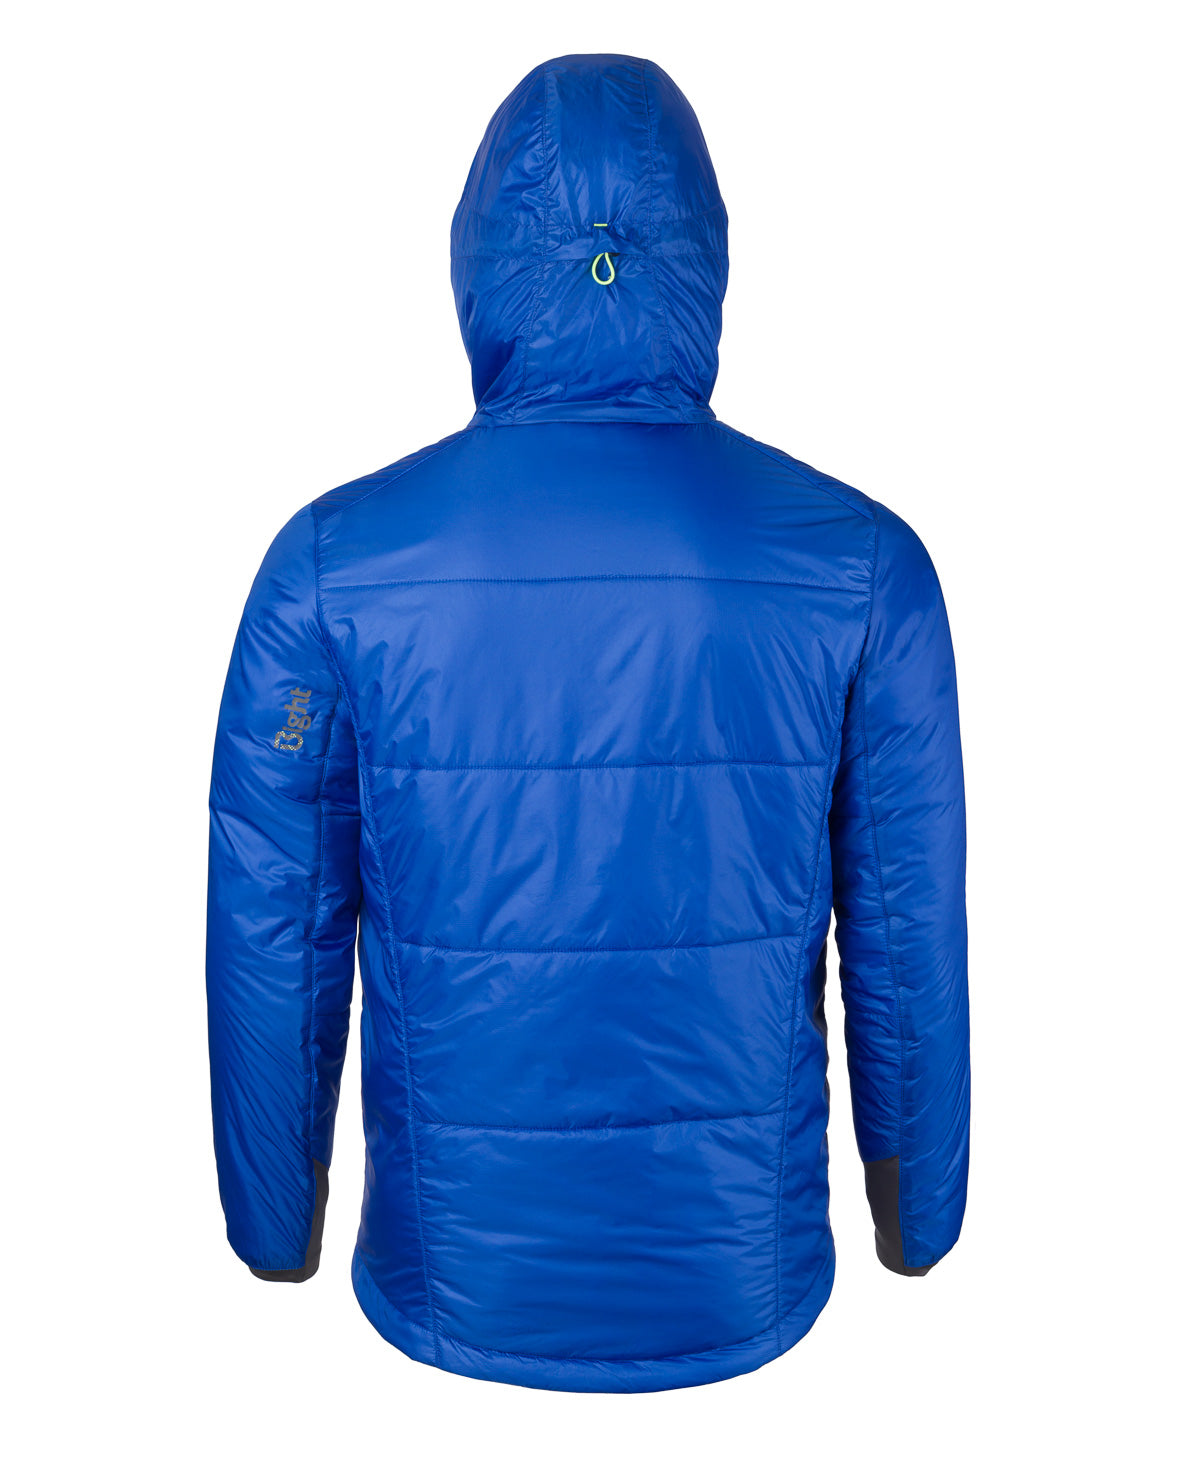 Men's Swelter Jacket